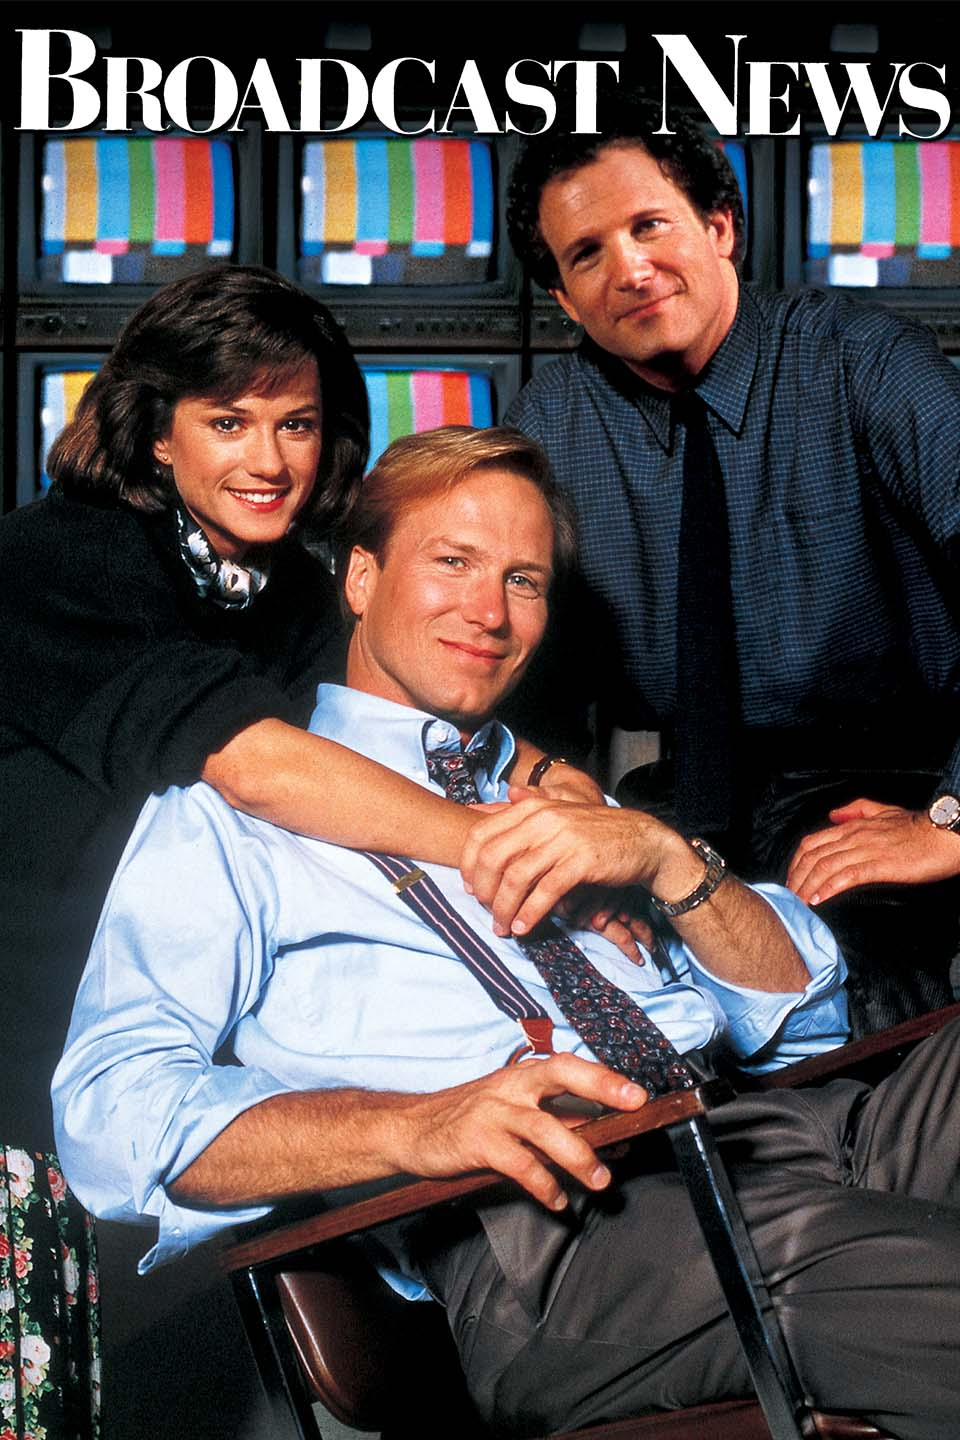 Broadcast News (1987) - Directed by: James L BrooksStarring: William Hurt, Albert Brooks, Holly Hunter, Joan Cusack, Christian Clemenson, Jack NicholsonRated: RRunning Time: 2 h 13 mTMM Score: 4 stars out of 5STRENGTHS: Characters, Writing, Directing, Acting, SatireWEAKNESSES: Some Cheesy Moments